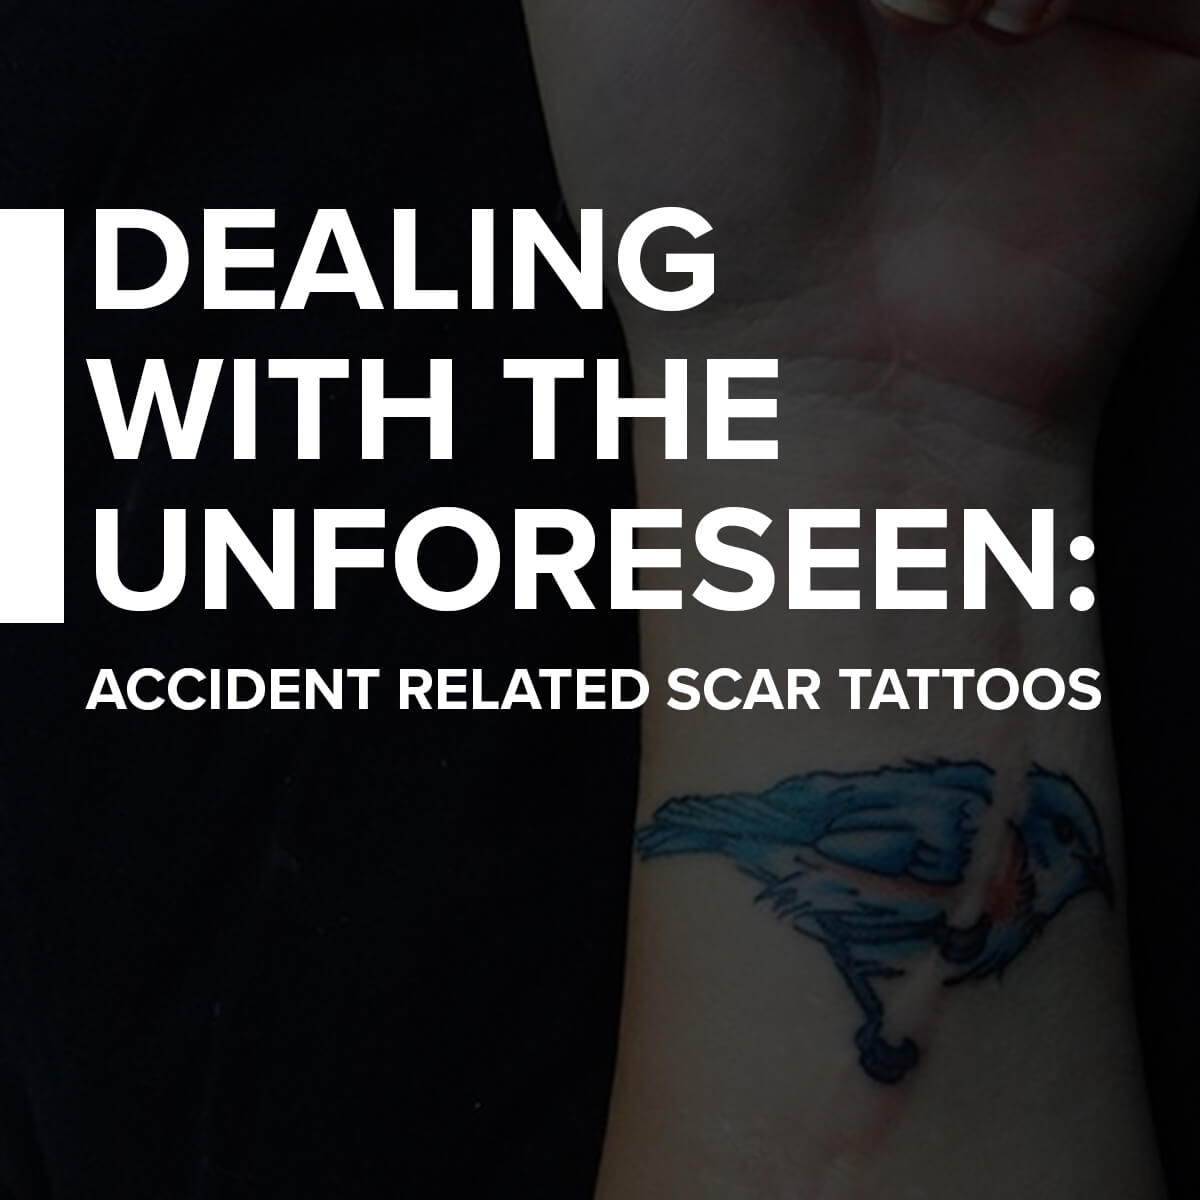 dealing with scars Skin cancer treatment and surgery can lead to scarring on one's face and body here's how two survivors suggest dealing with these visual reminders.